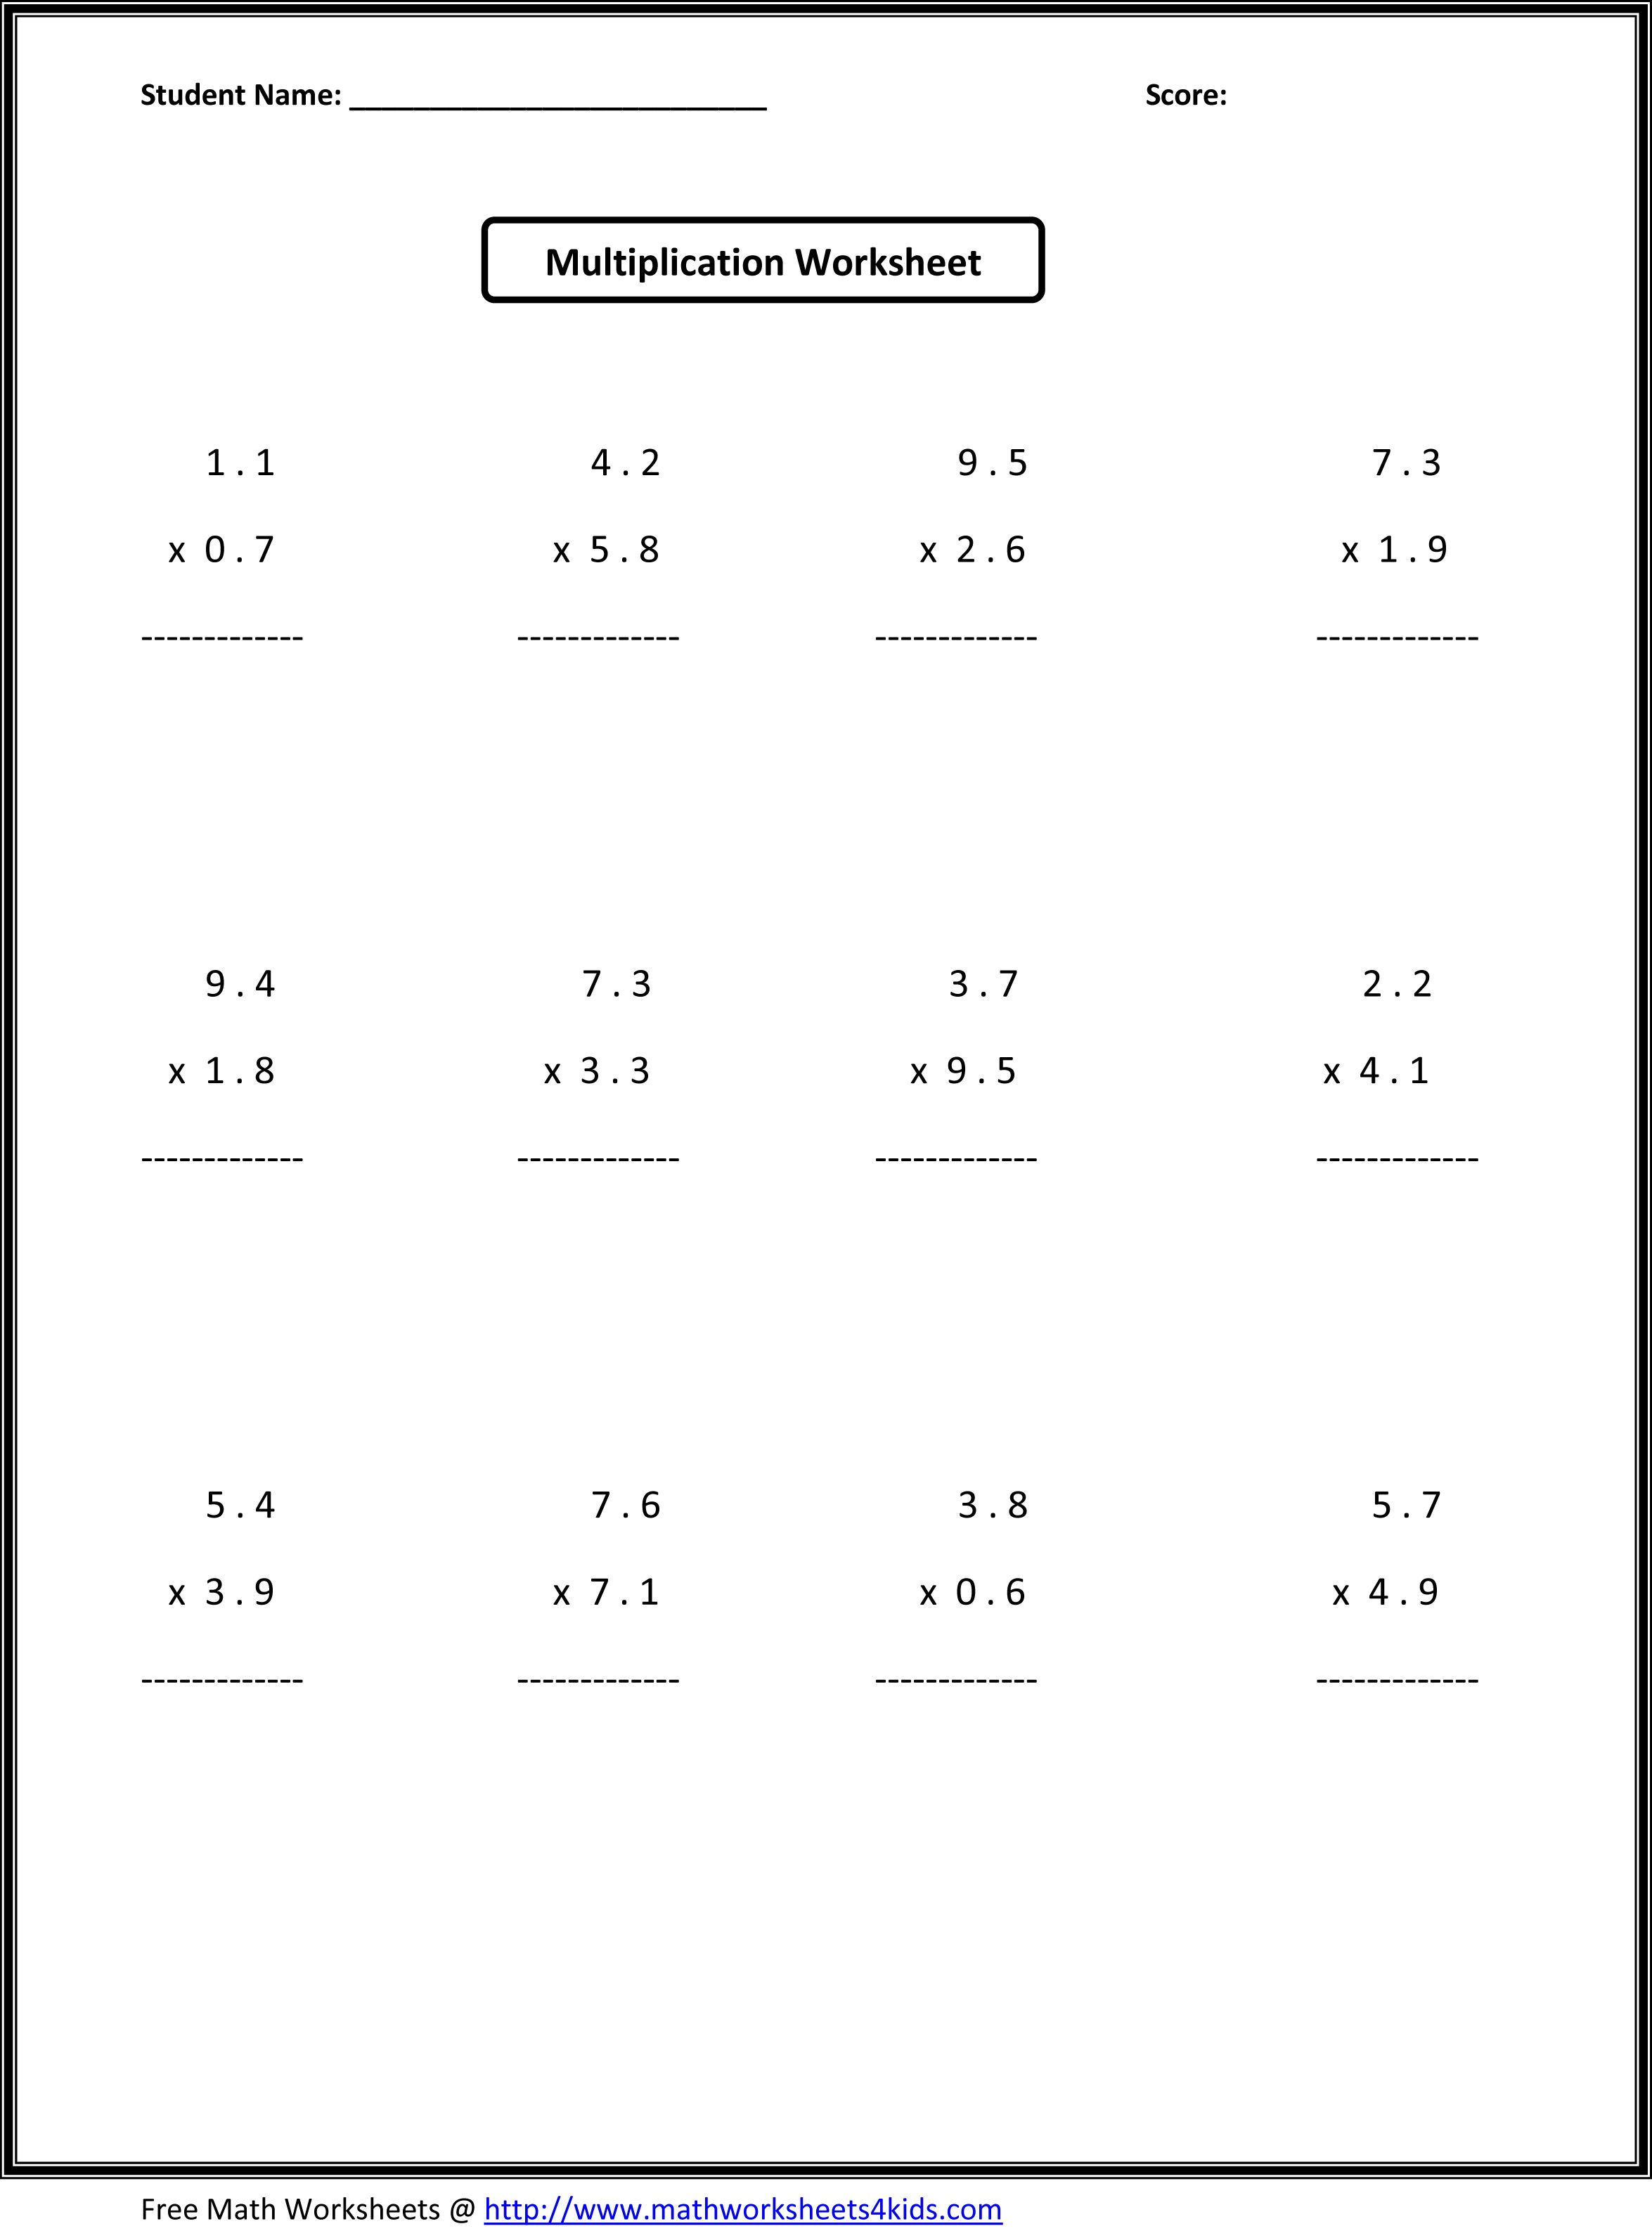 7th Grade Algebra Worksheets 7th Grade Math Worksheets – Math Worksheets for Grade 7 Algebra